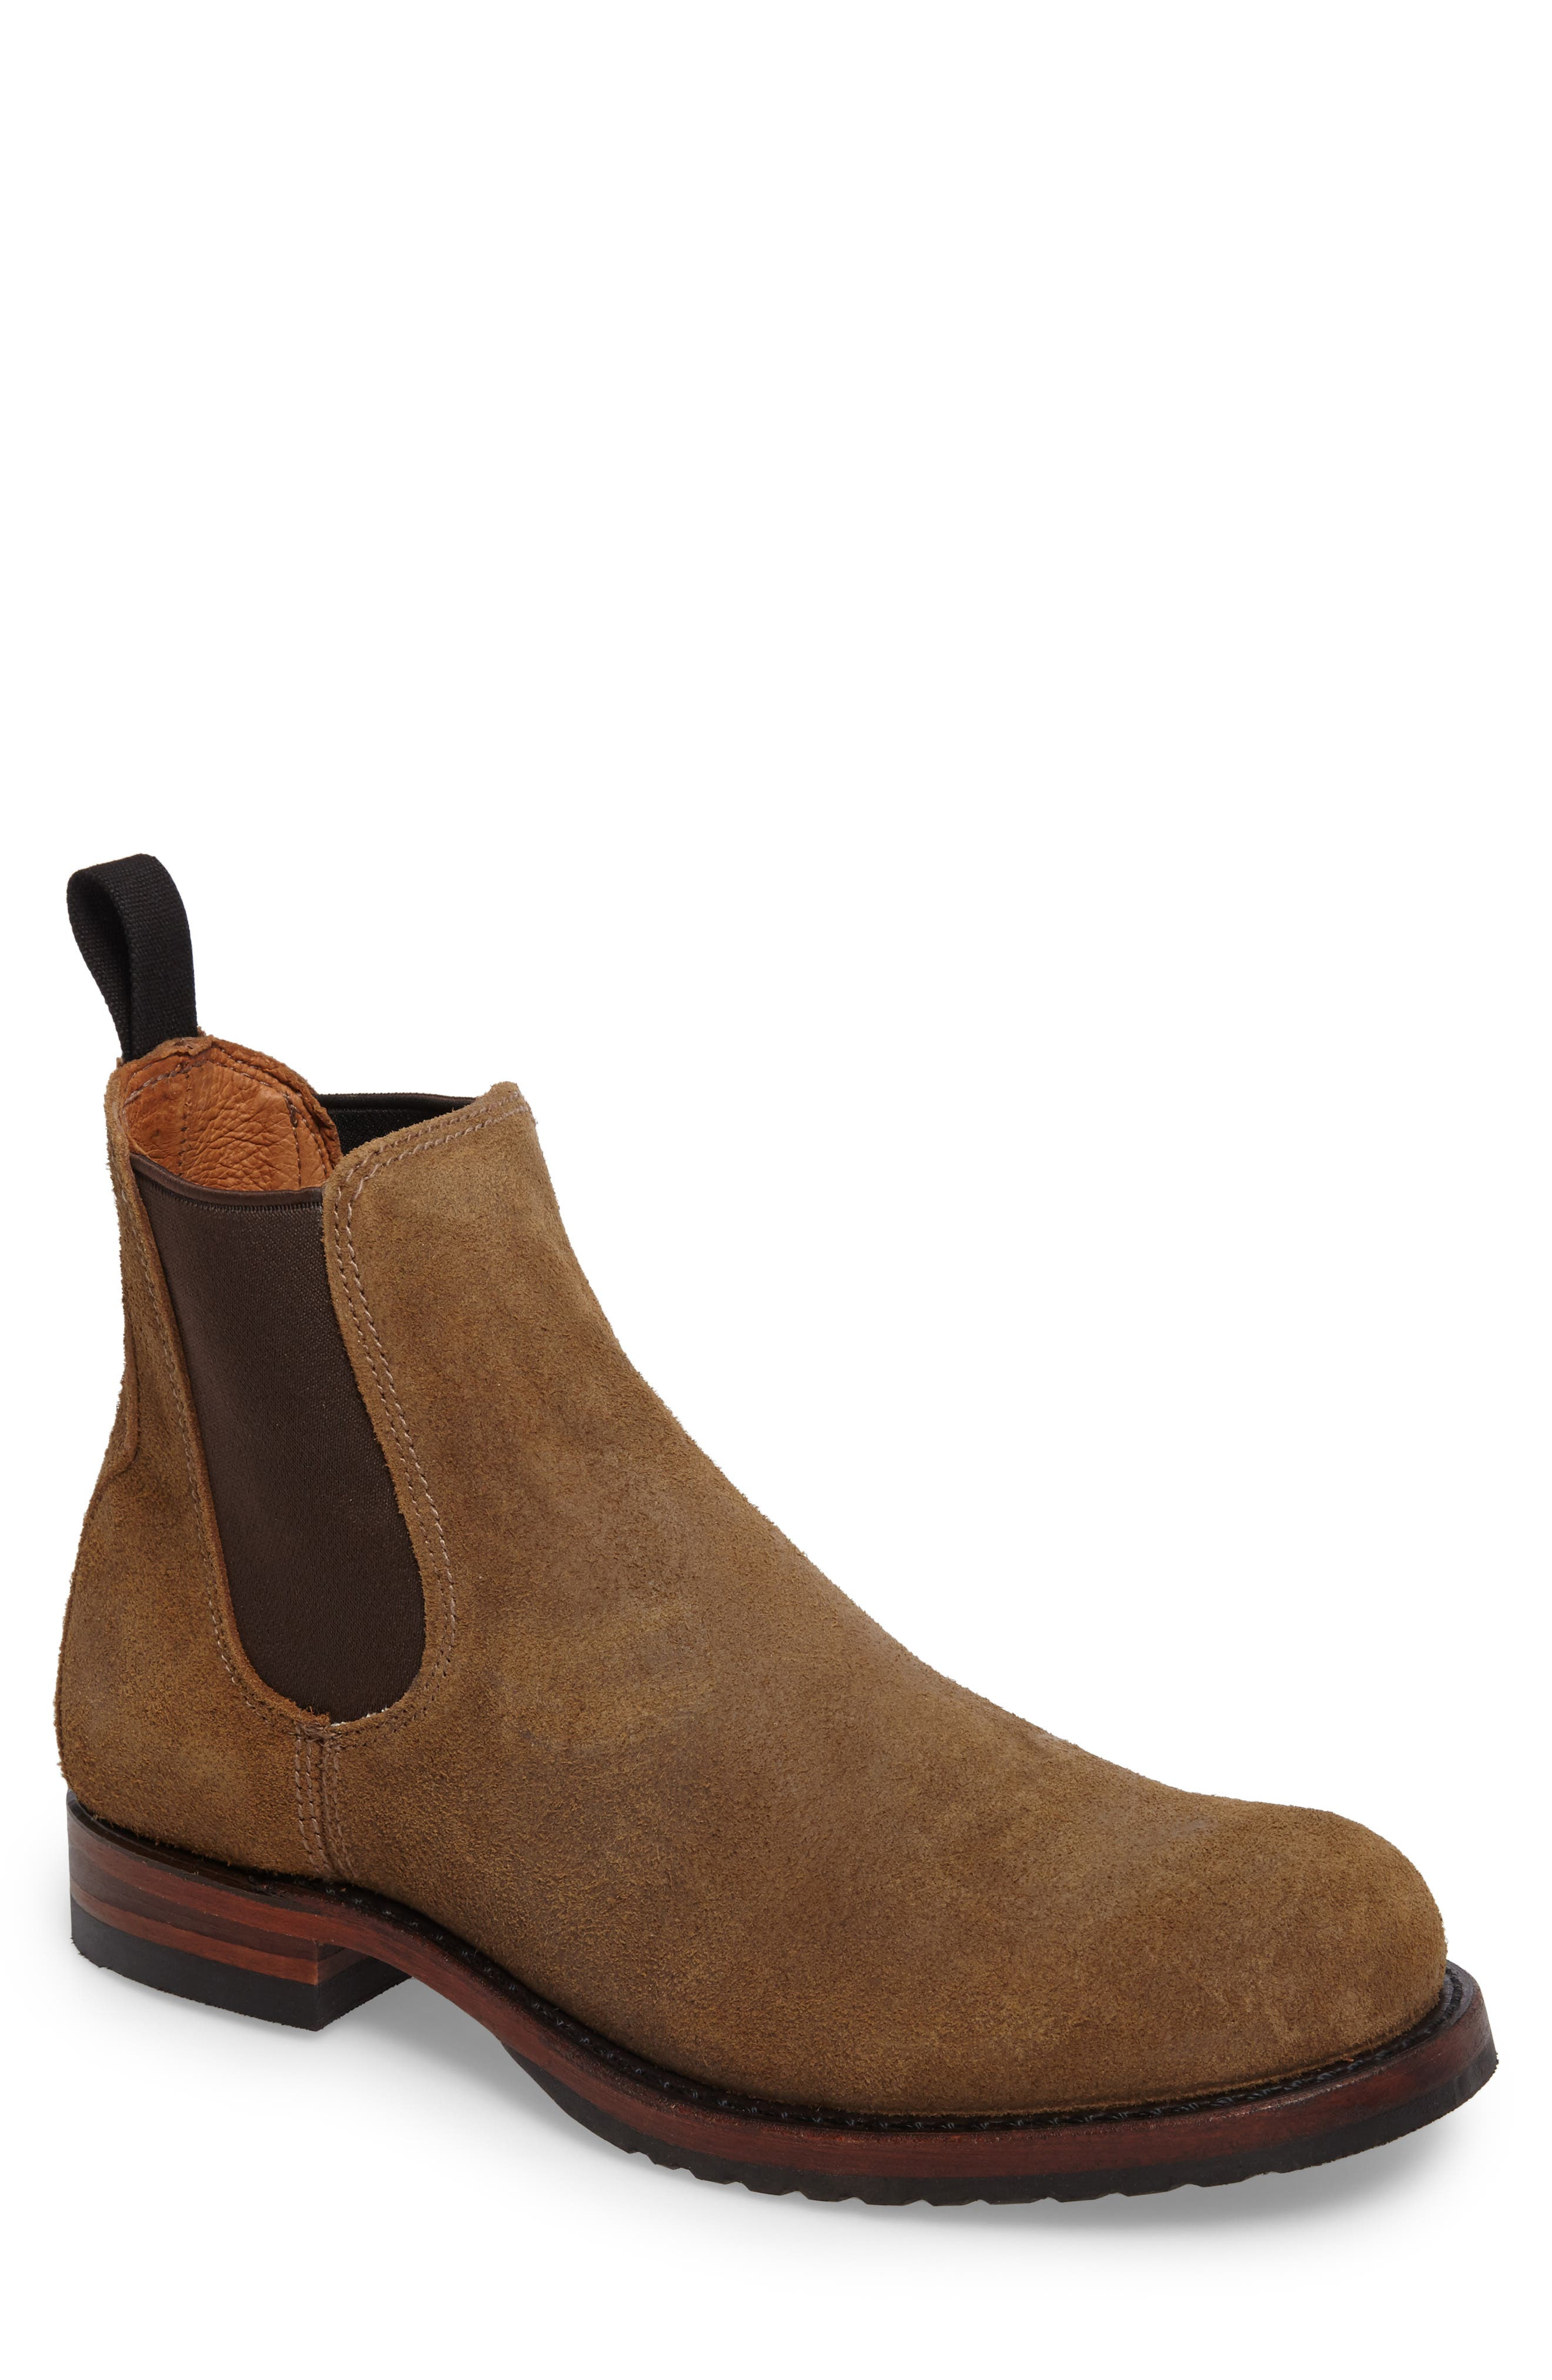 Logan Chelsea Boot,                         Main,                         color, Chestnut Waxed Suede